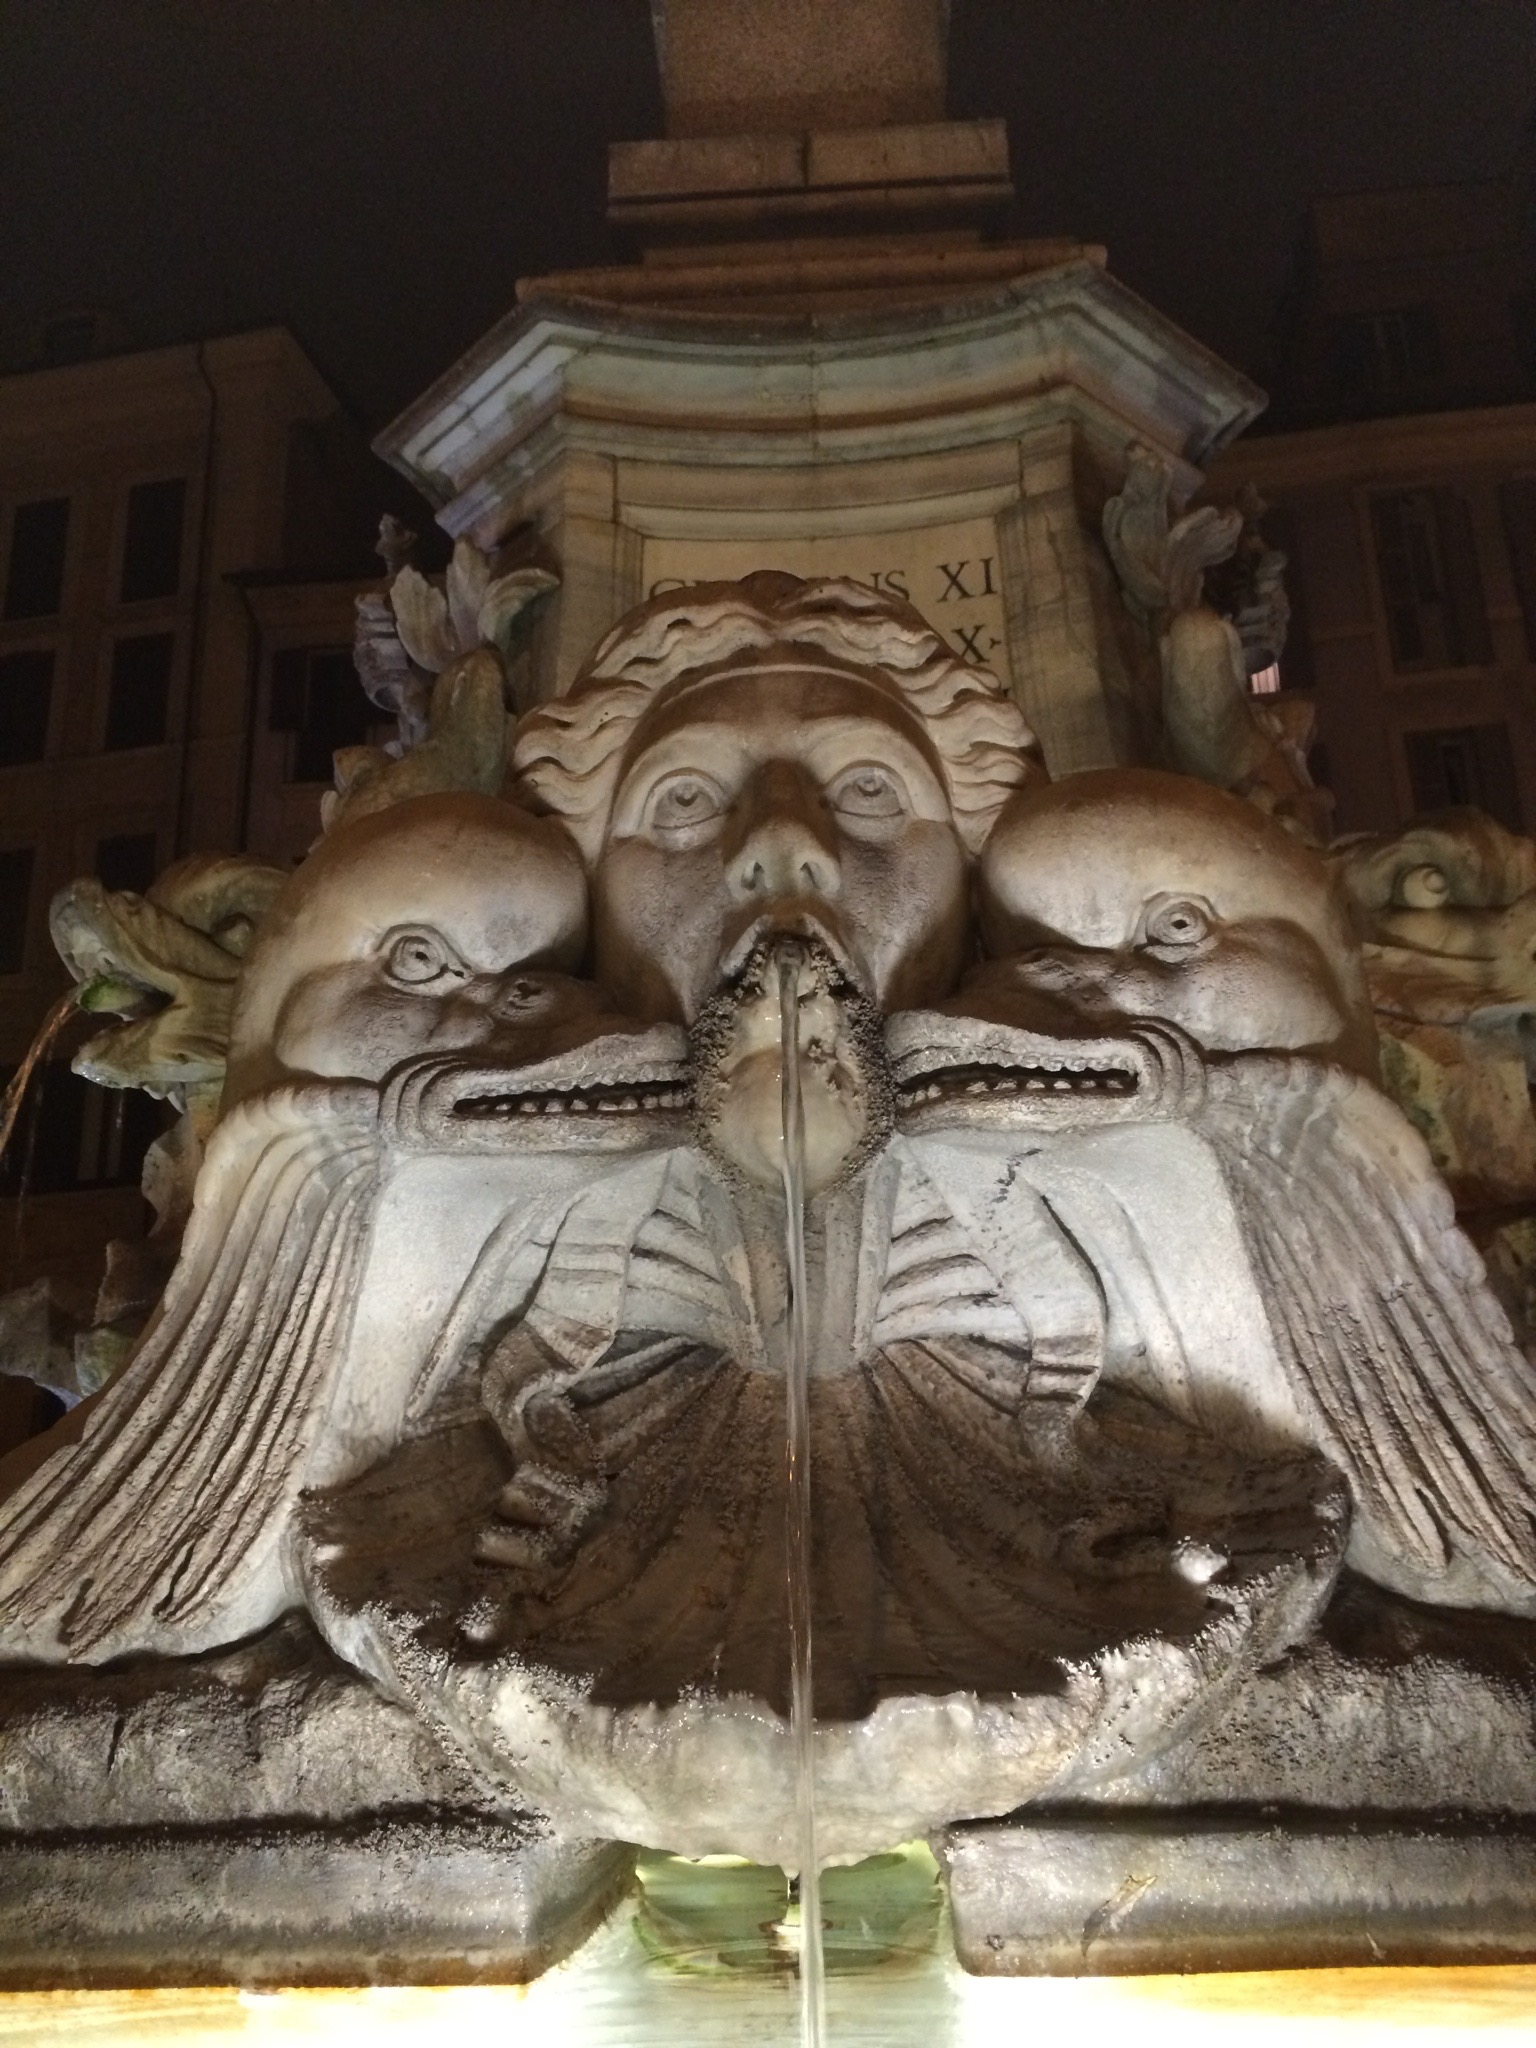 Detail of a fountain near the Pantheon - Rome